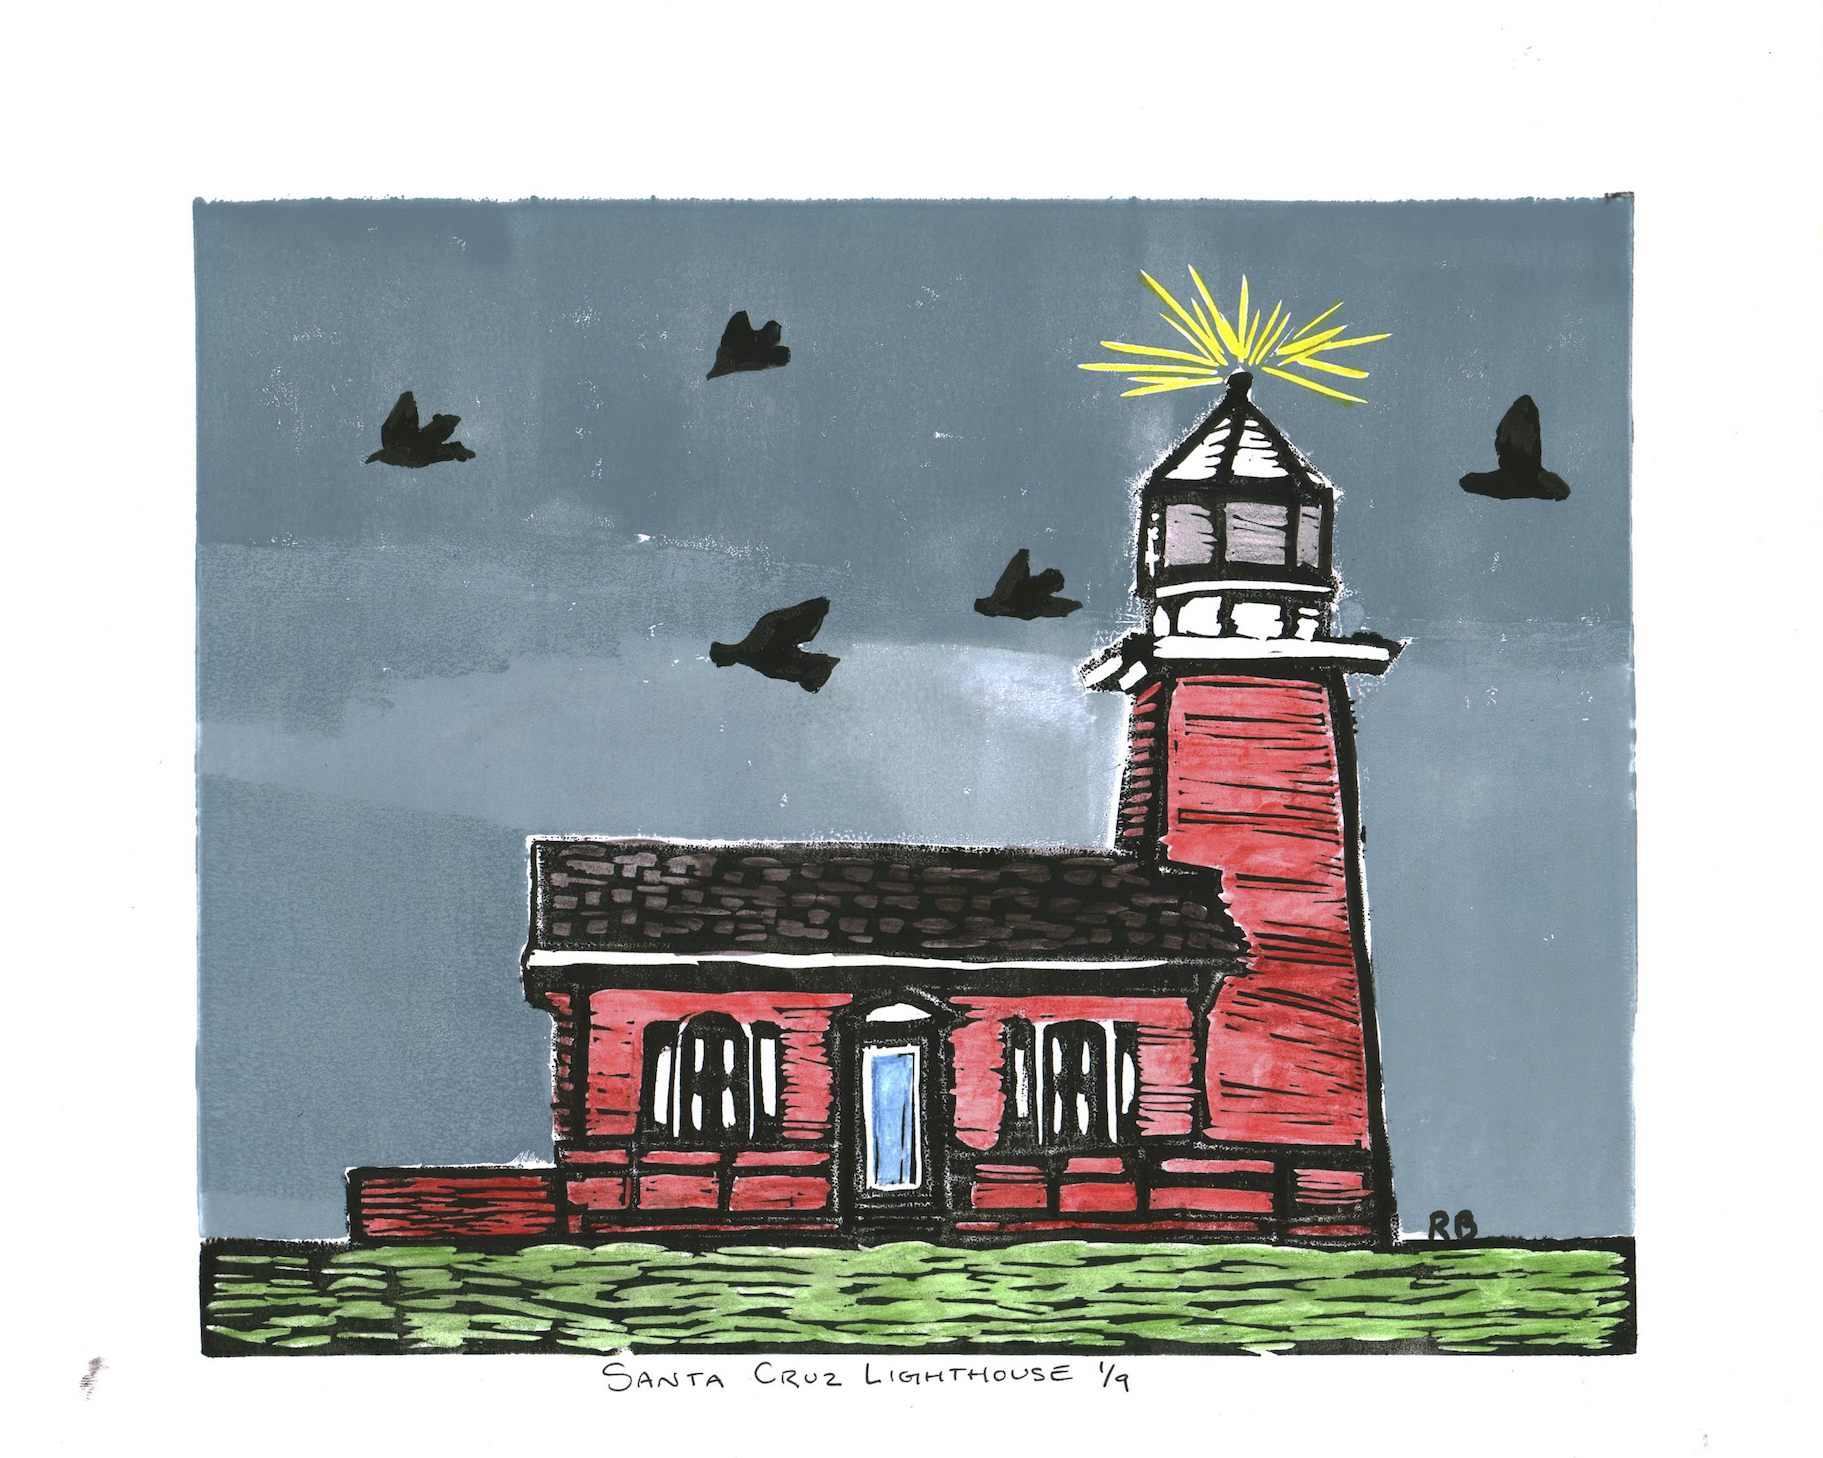 Robin Blake - Santa Cruz Lighthouse 1/9